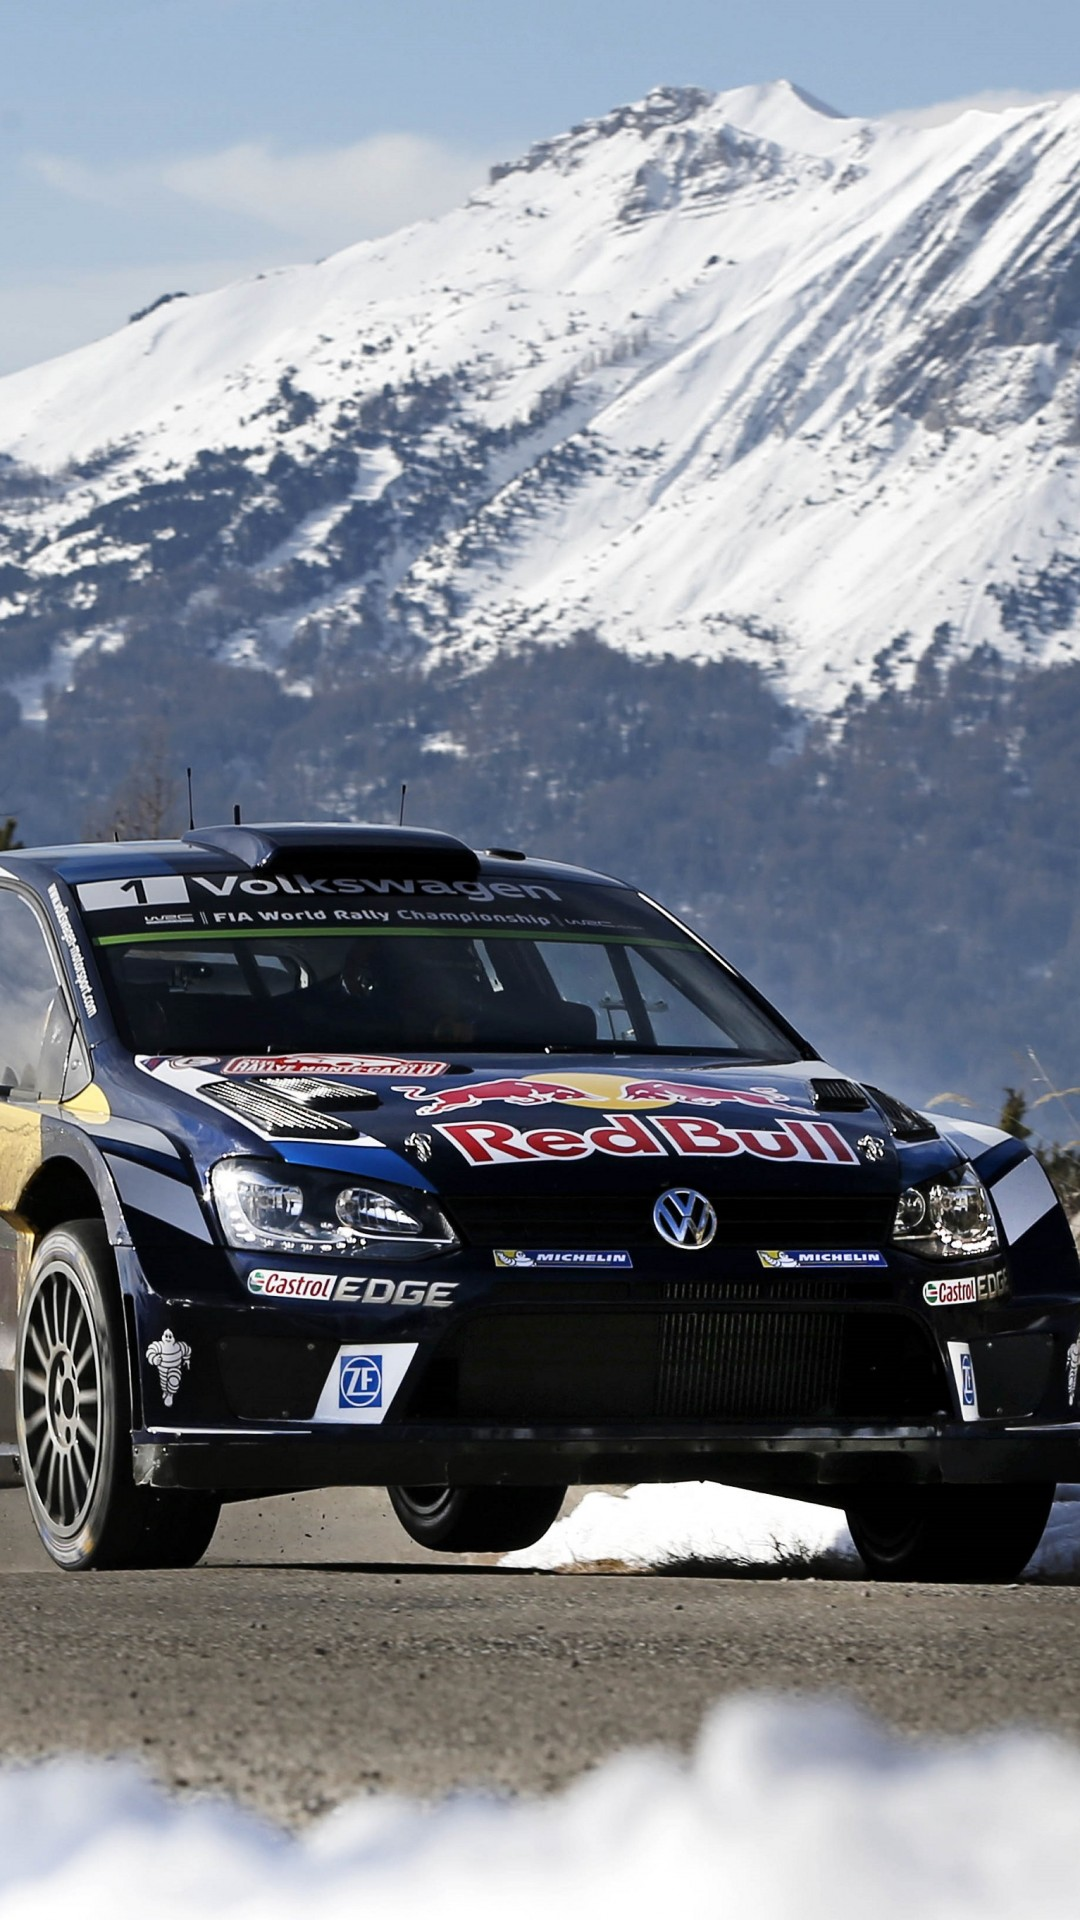 Wallpaper Volkswagen Polo R Wrc Wrc Mexico 2016 Cars